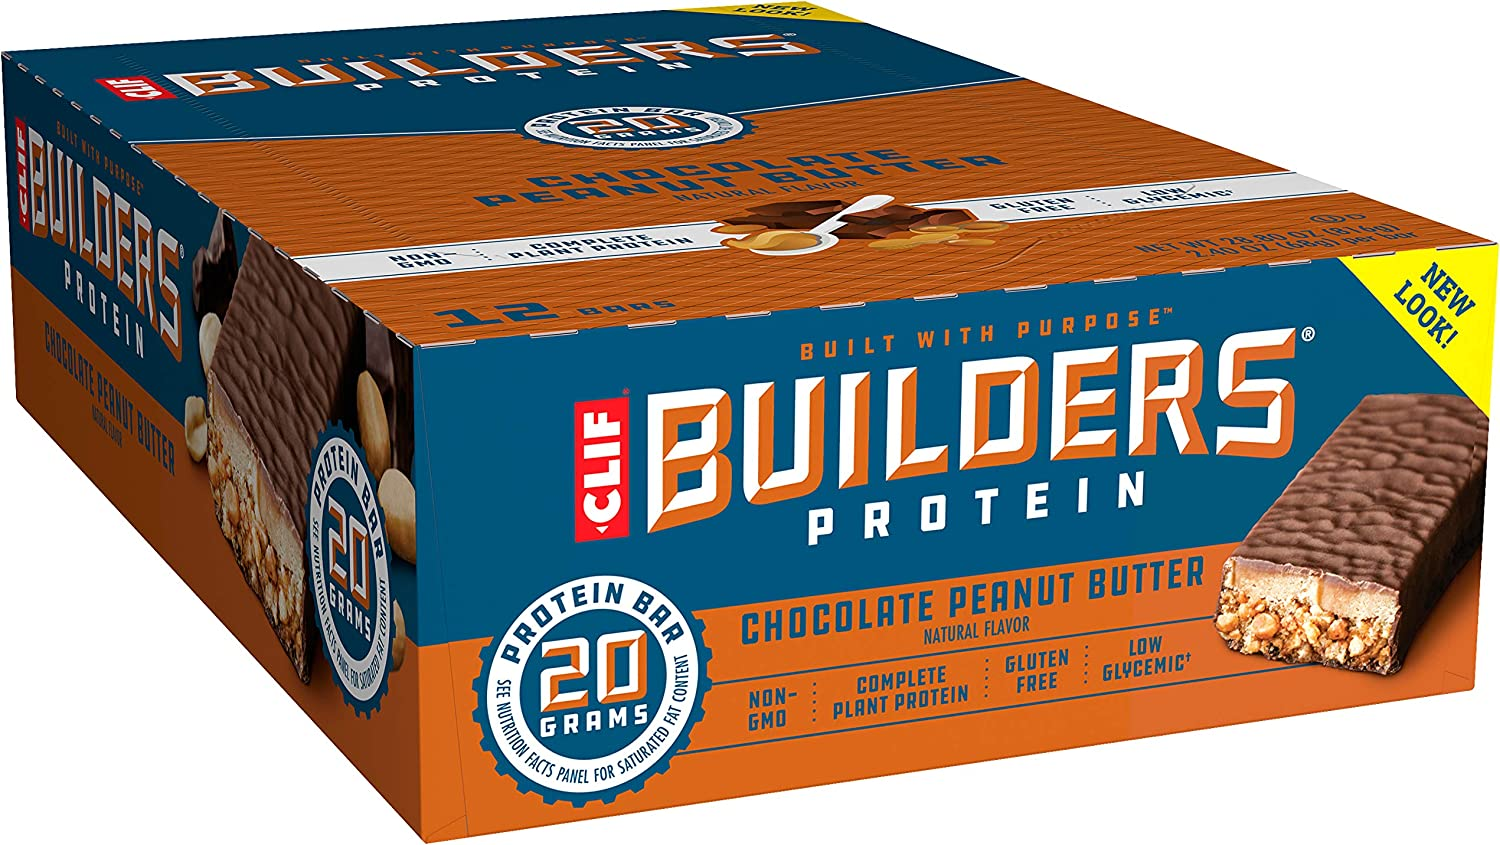 CLIF Builders Protein Bars – Chocolate Peanut Butter Flavor